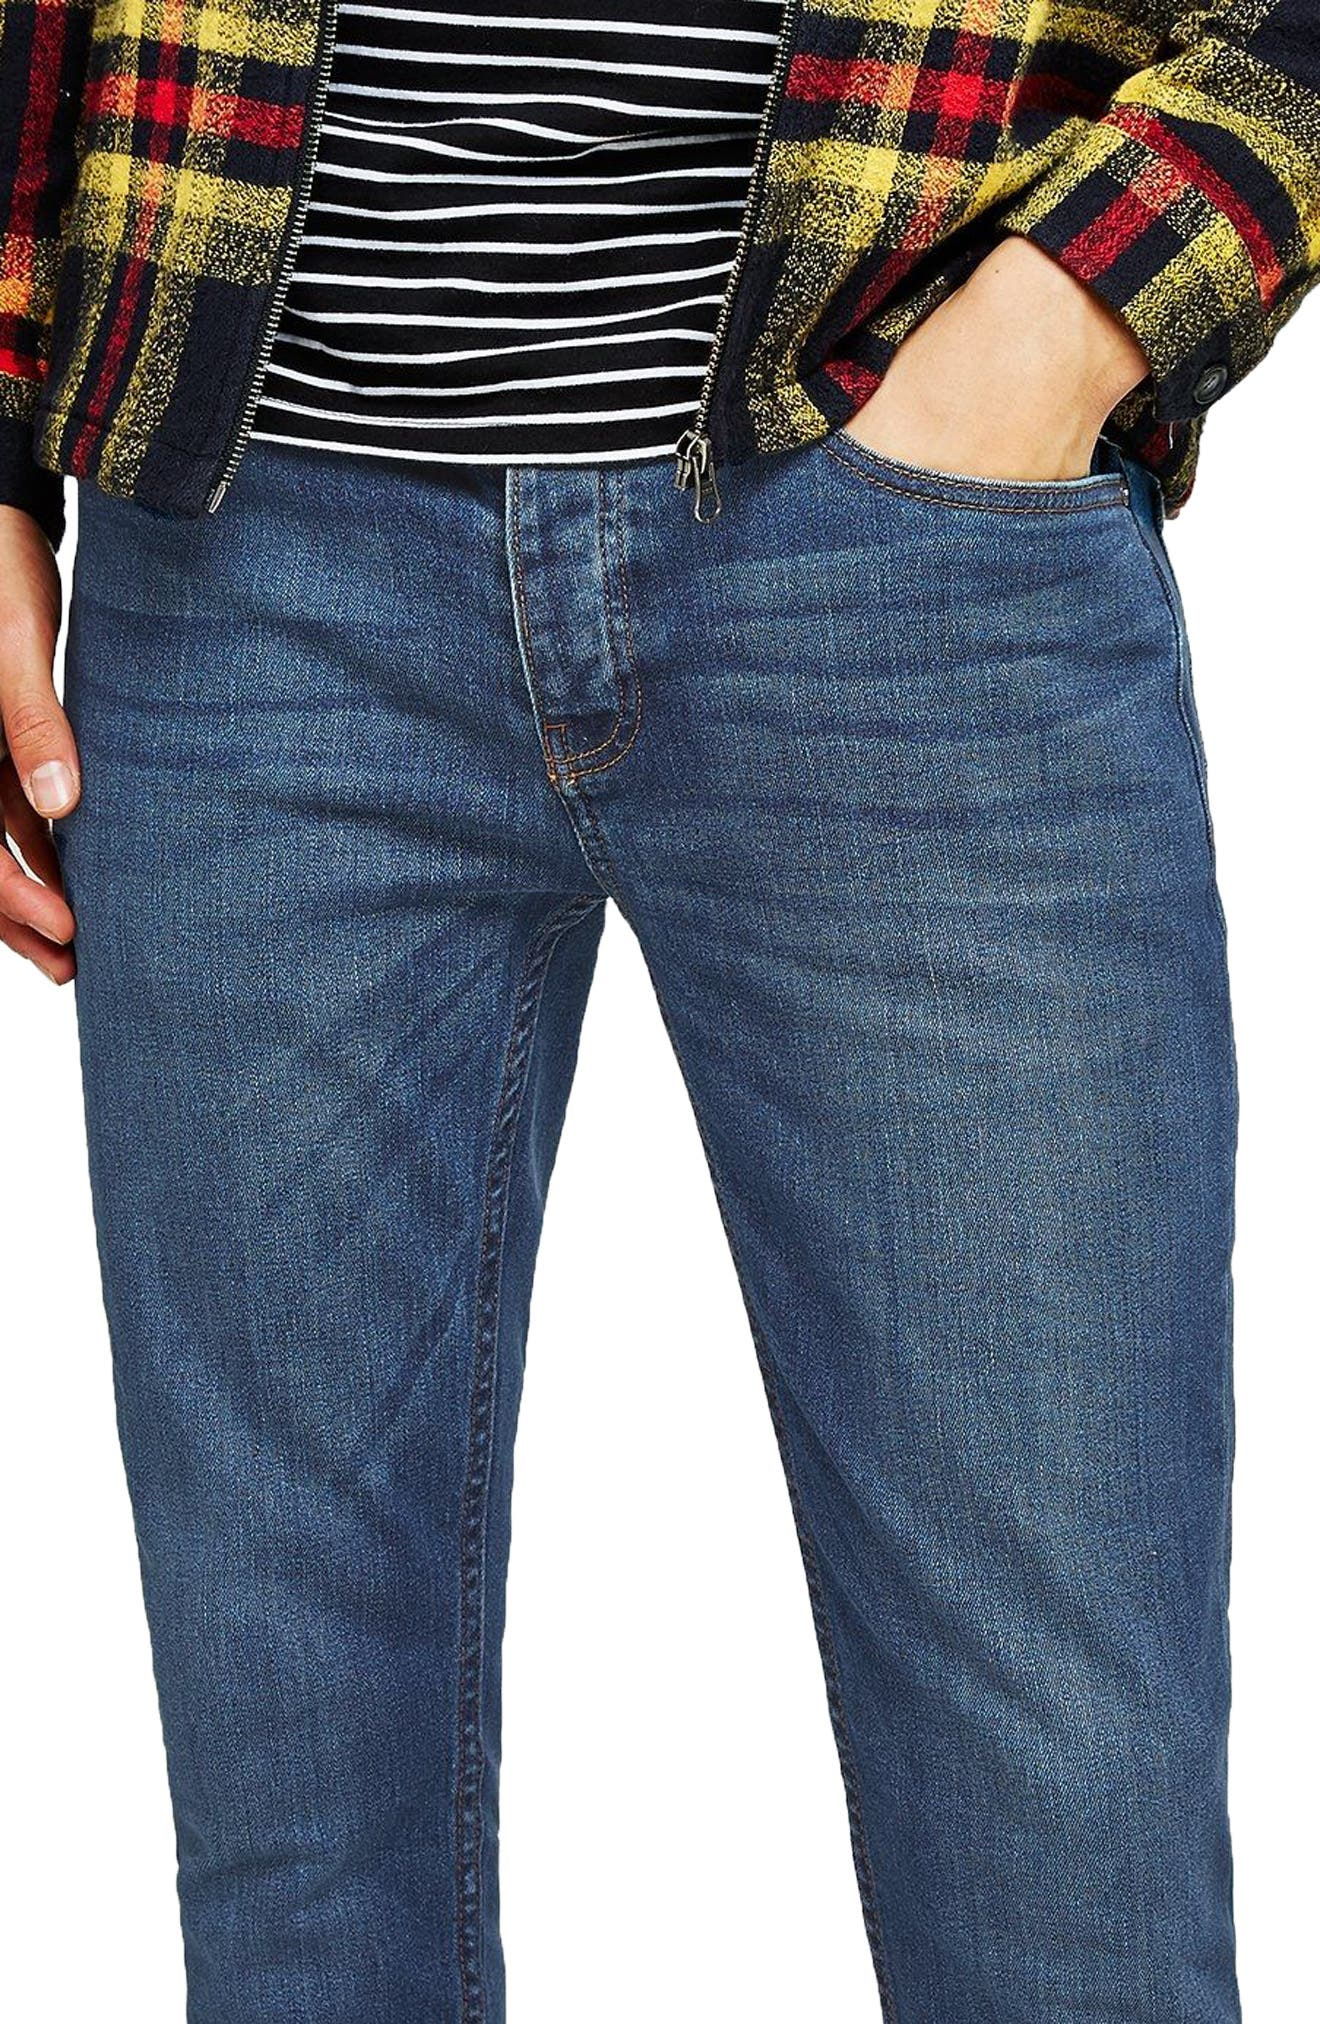 TOPMAN, Stretch Skinny Fit Jeans, Main thumbnail 1, color, BLUE